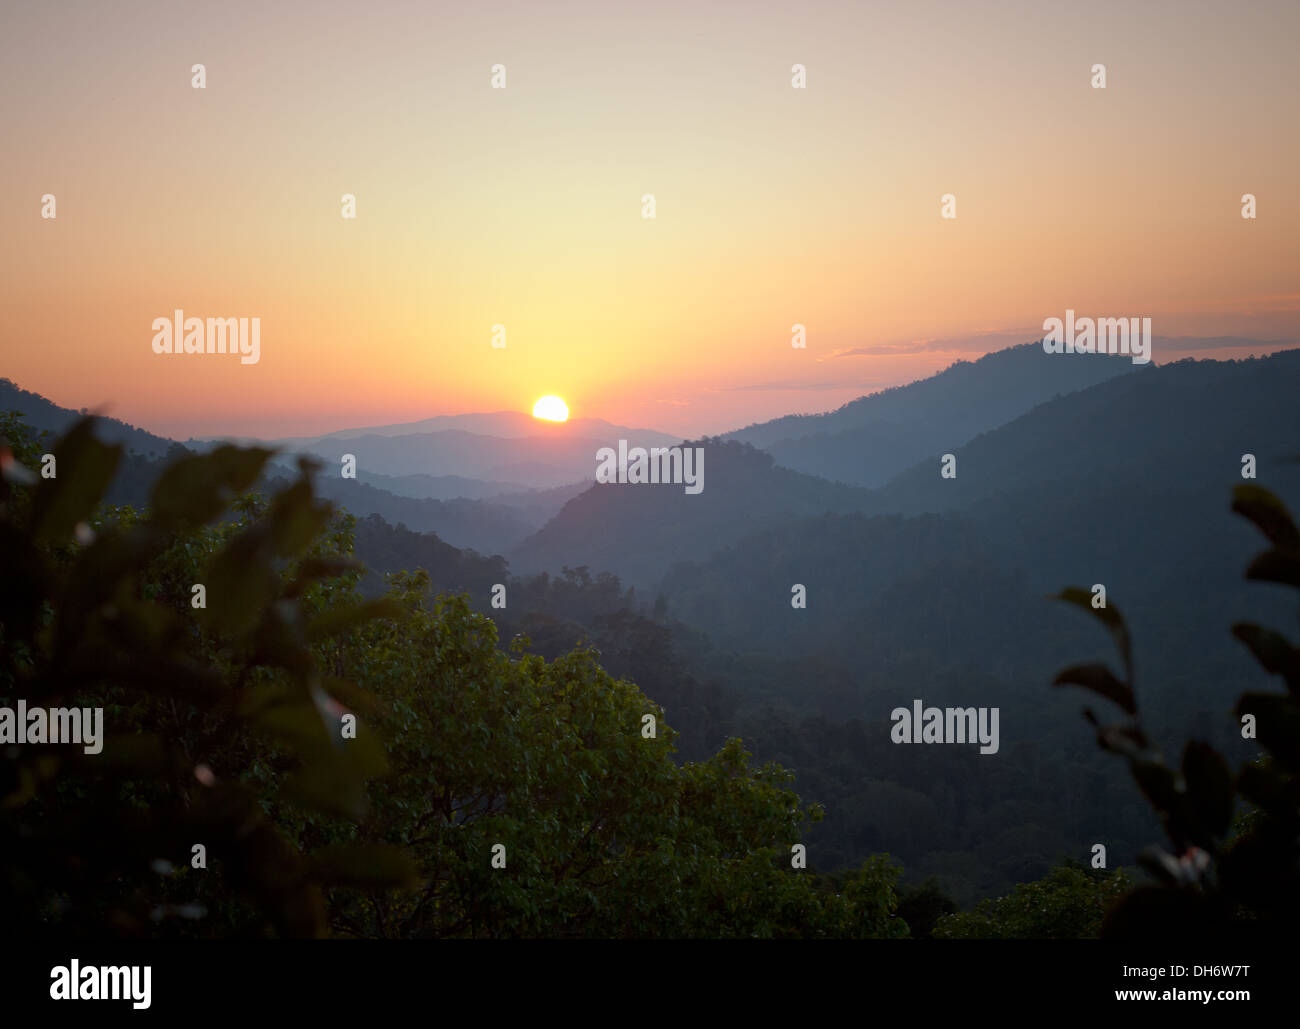 A gorgeous sunset over Bokeo Nature Reserve as seen from a treehouse at The Gibbon Experience near Huay Xai, Laos. - Stock Image